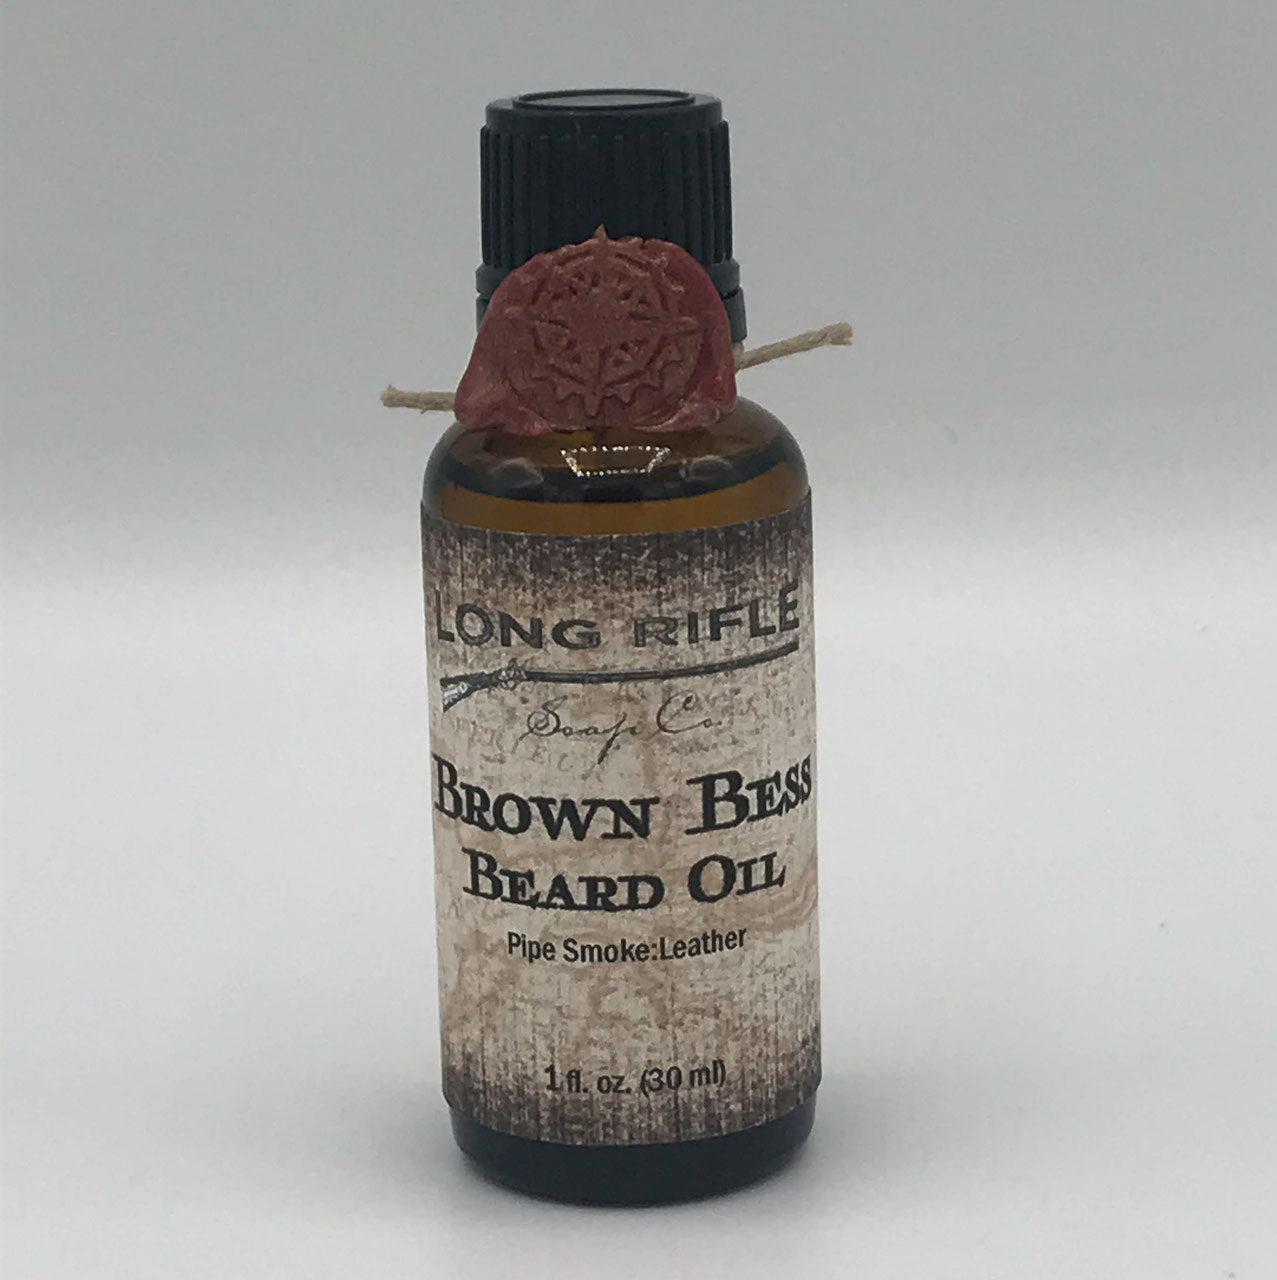 Brown Bess Beard Oil